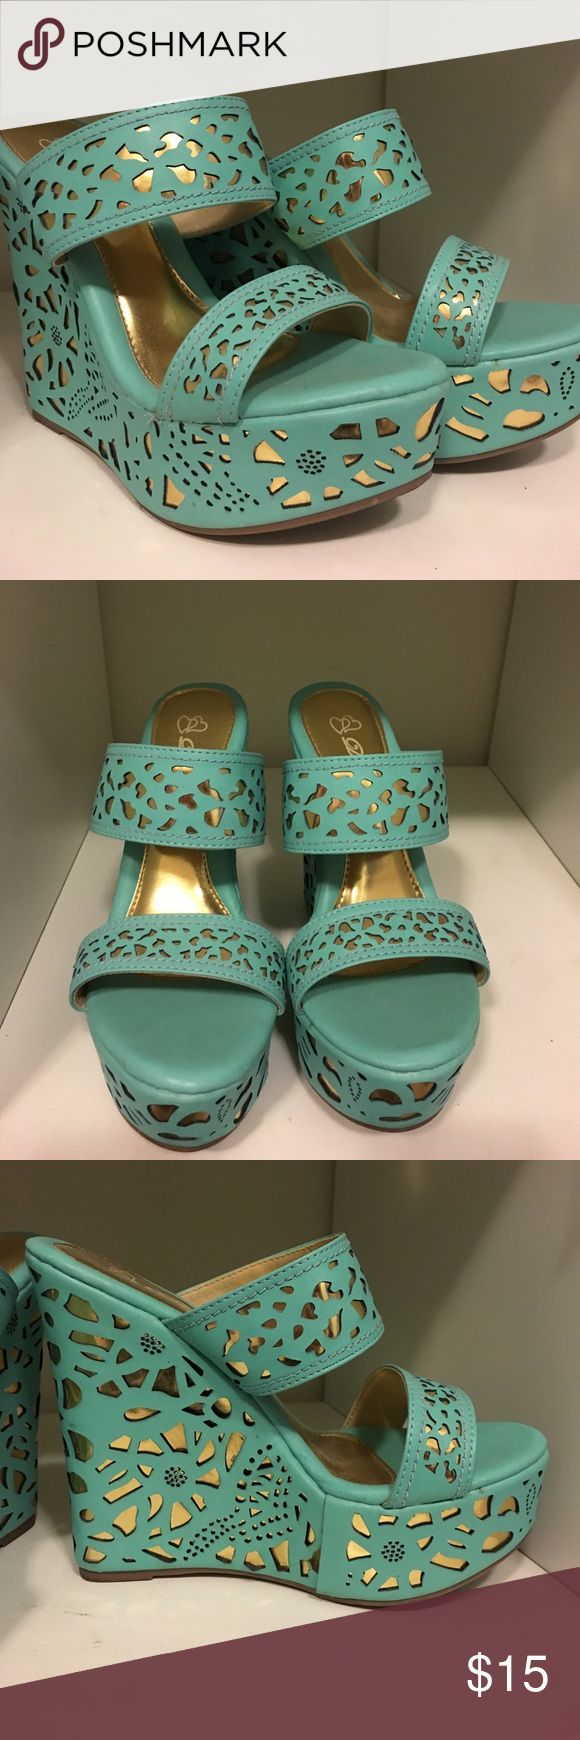 👡👠Turquoise wedges👡👠 New turquoise slip on wedges. Worn once, great condition Shoes Wedges